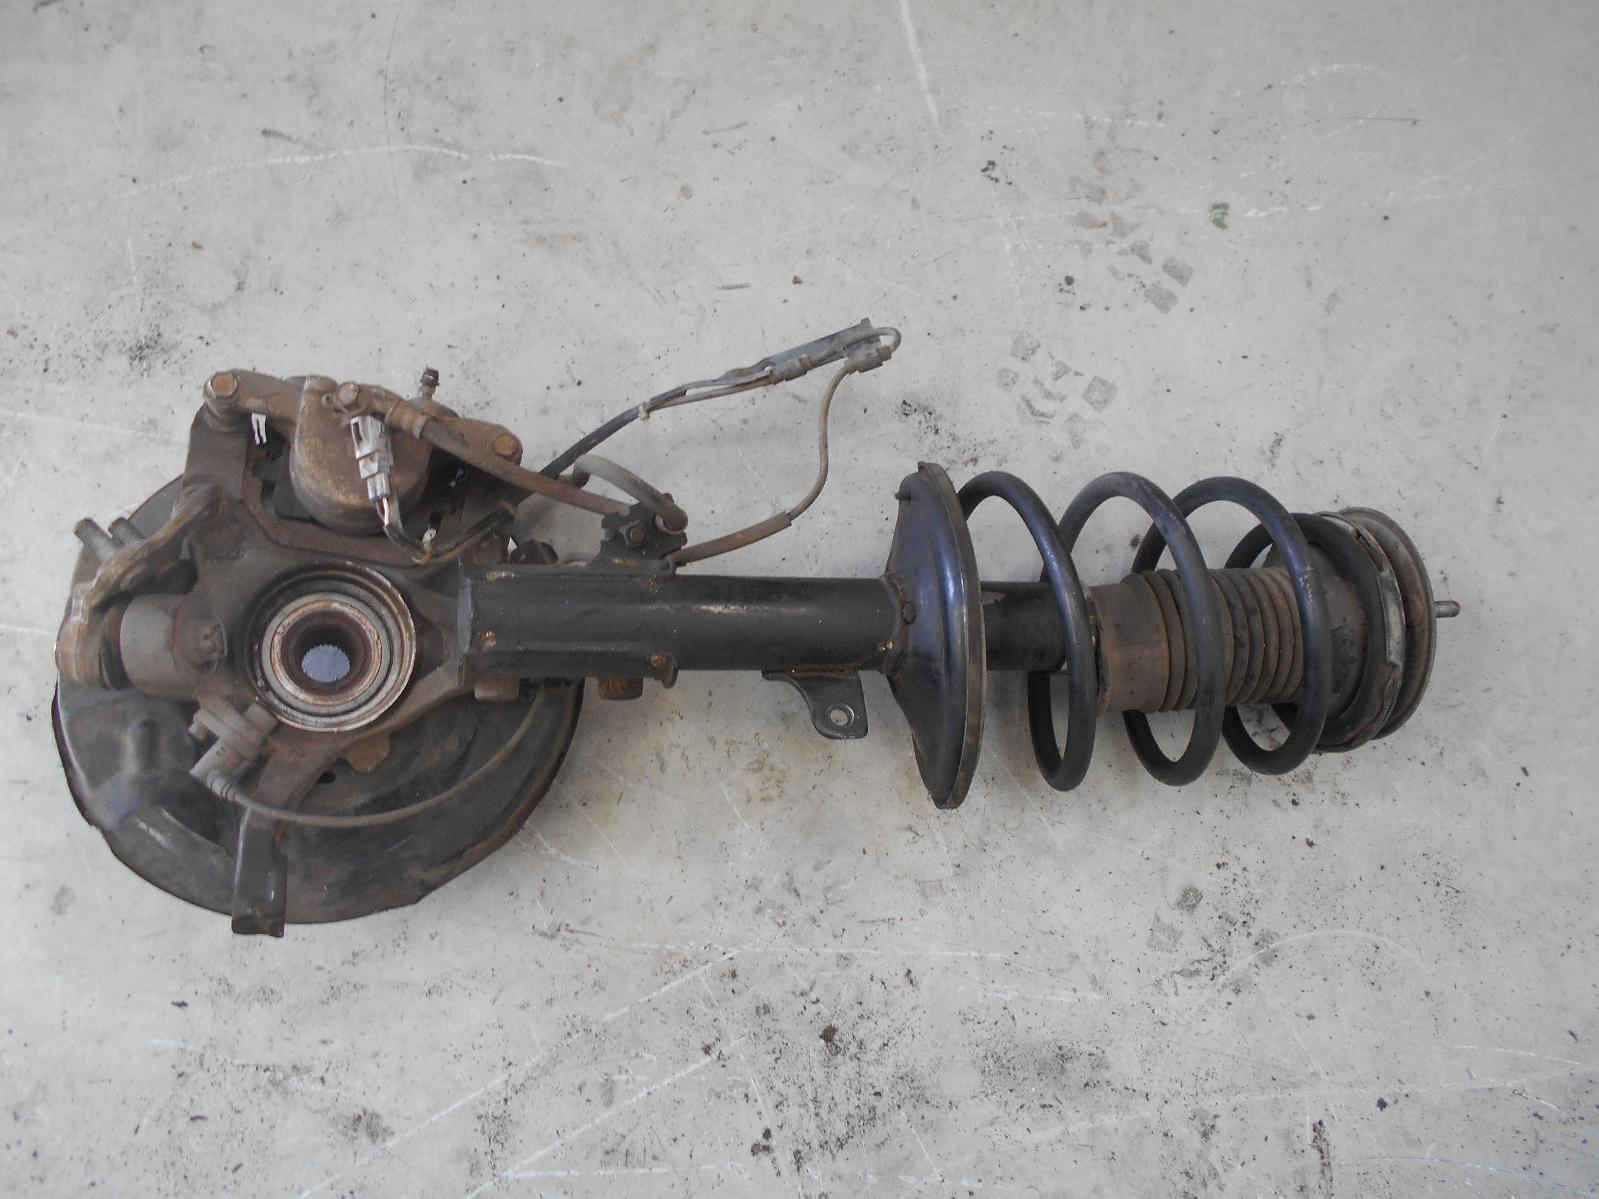 TOYOTA CAMRY, Right Front Strut, SK20, 3.0, 1MZ V6, 08/97-09/00